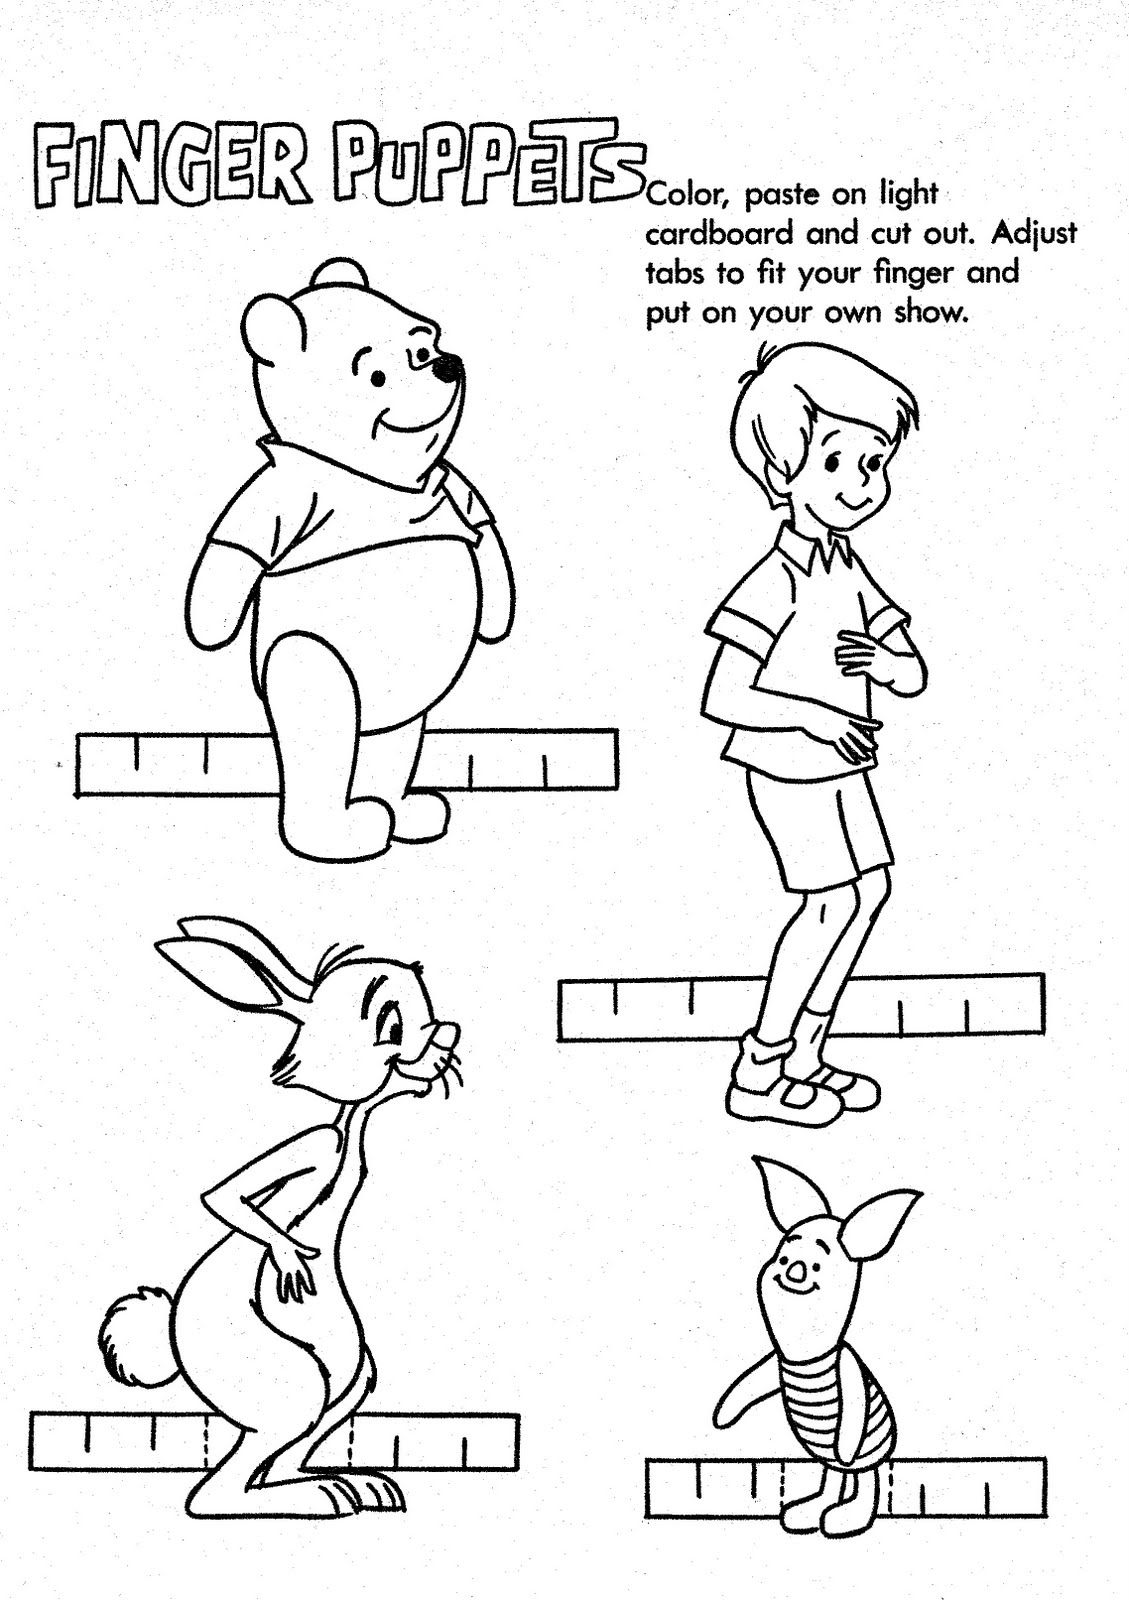 Mostly Paper Dolls Winnie The Pooh Finger Puppets